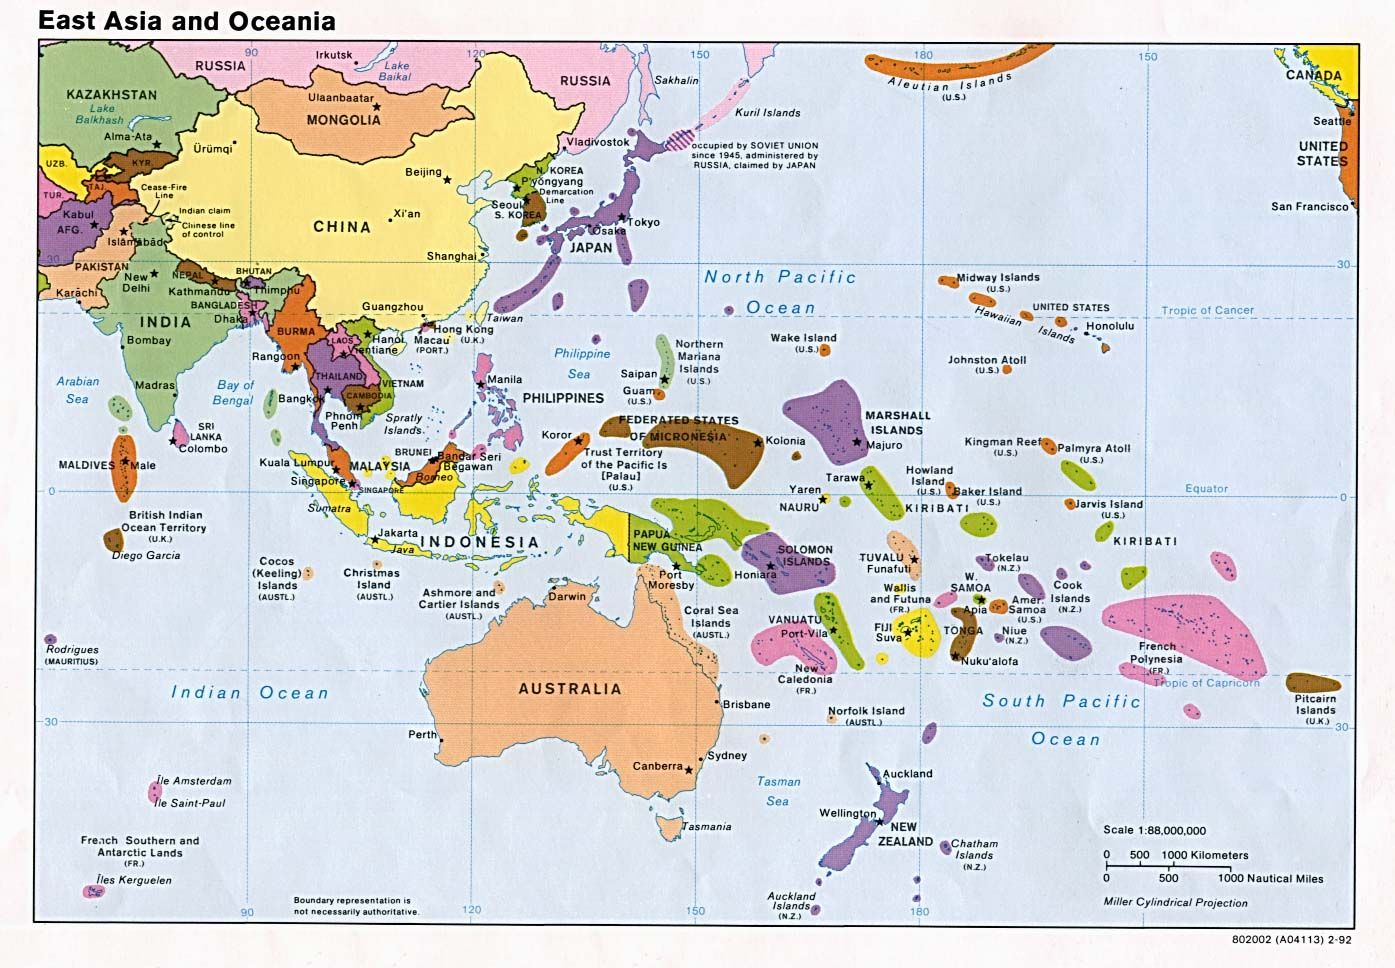 Oceania consists of Australia Fiji Kiribati Marshall Islands